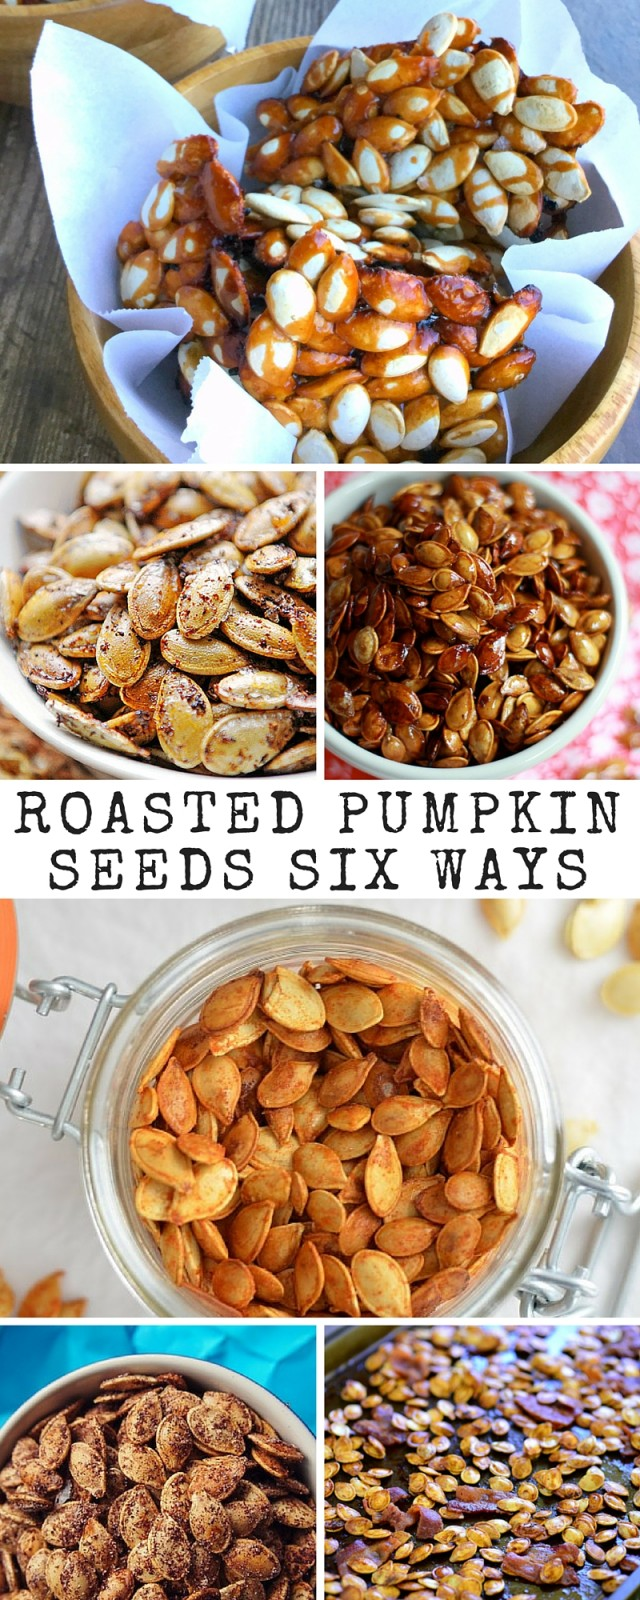 Roasted Pumpkin Seeds 6 Ways